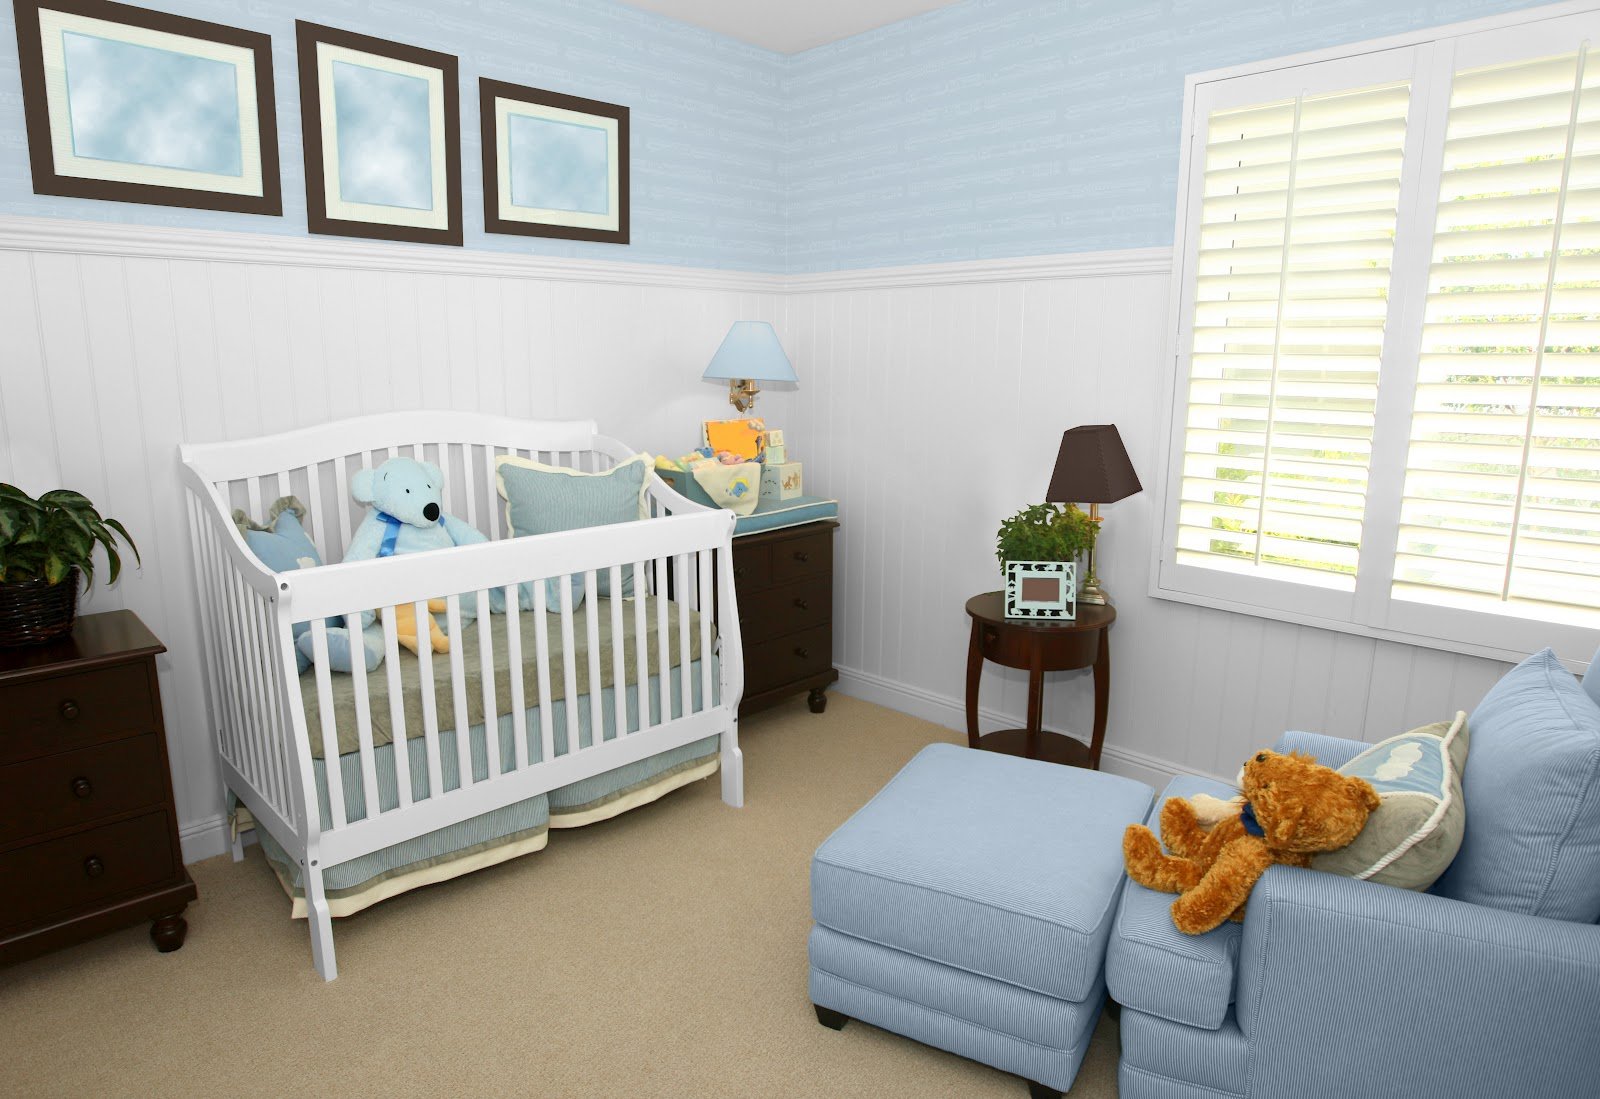 Top 10 baby nursery room colors and decorating ideas for Baby boy bedroom decoration